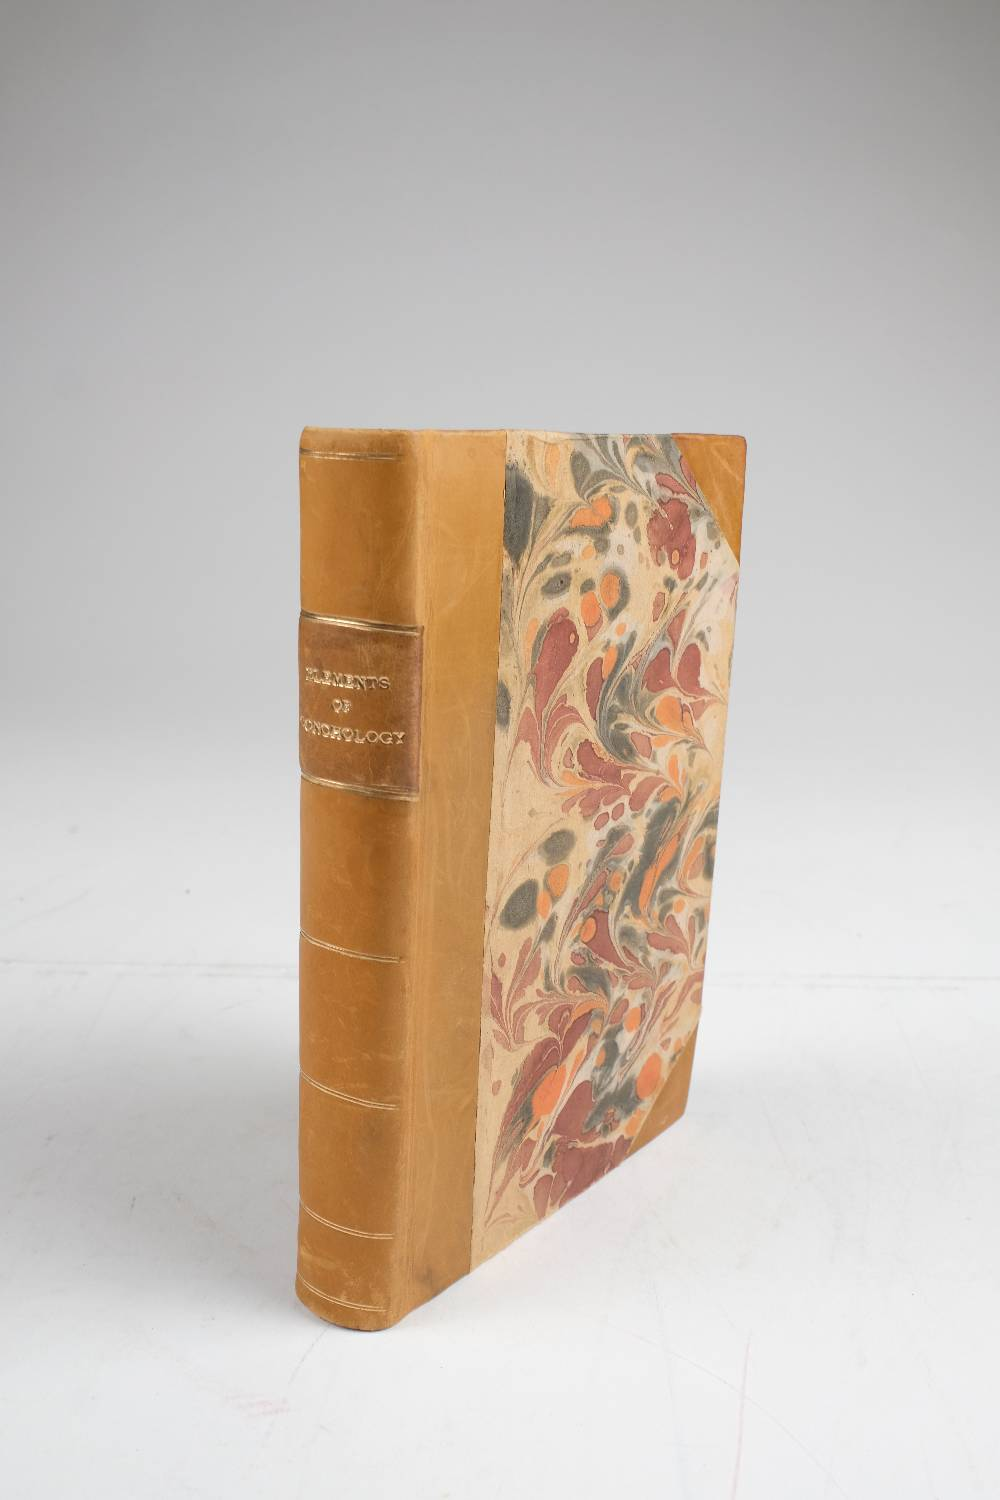 Lot 26 - Costa (Emanuel Mendes da). Elements of Conchology: Or, an Introduction to the Knowledge of Shells,